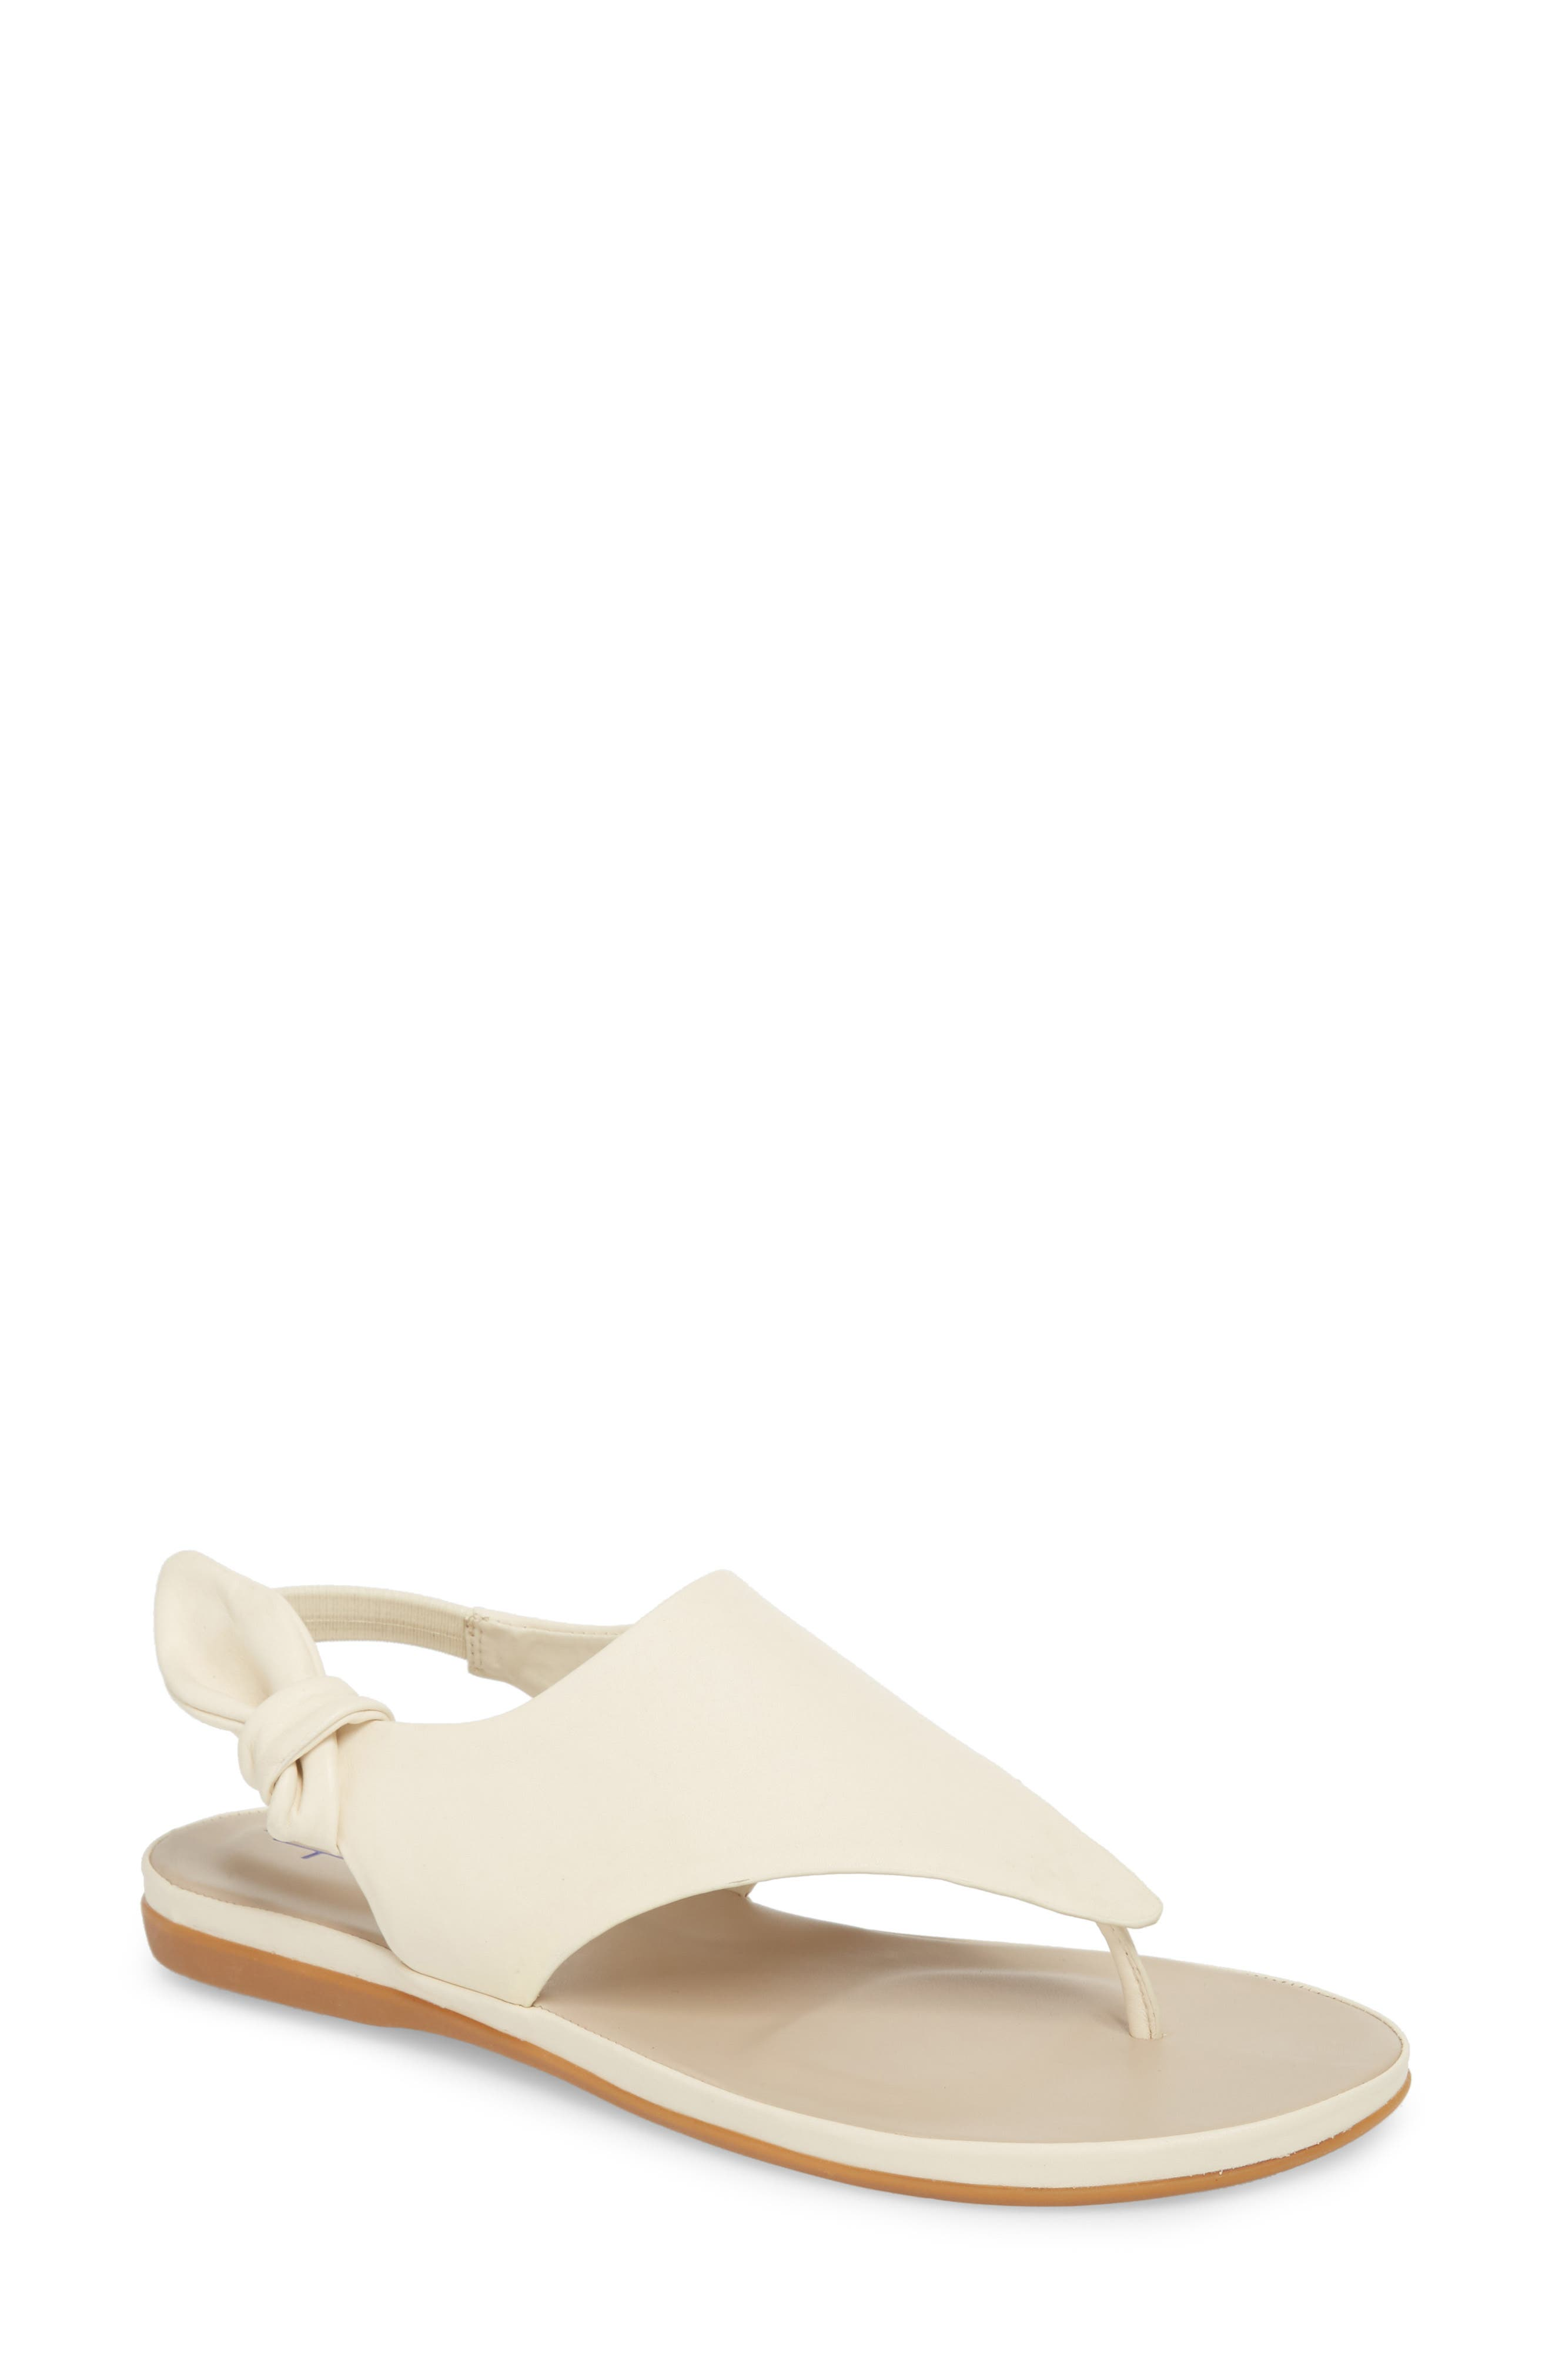 Aleena Sandal,                         Main,                         color, Warm White Leather